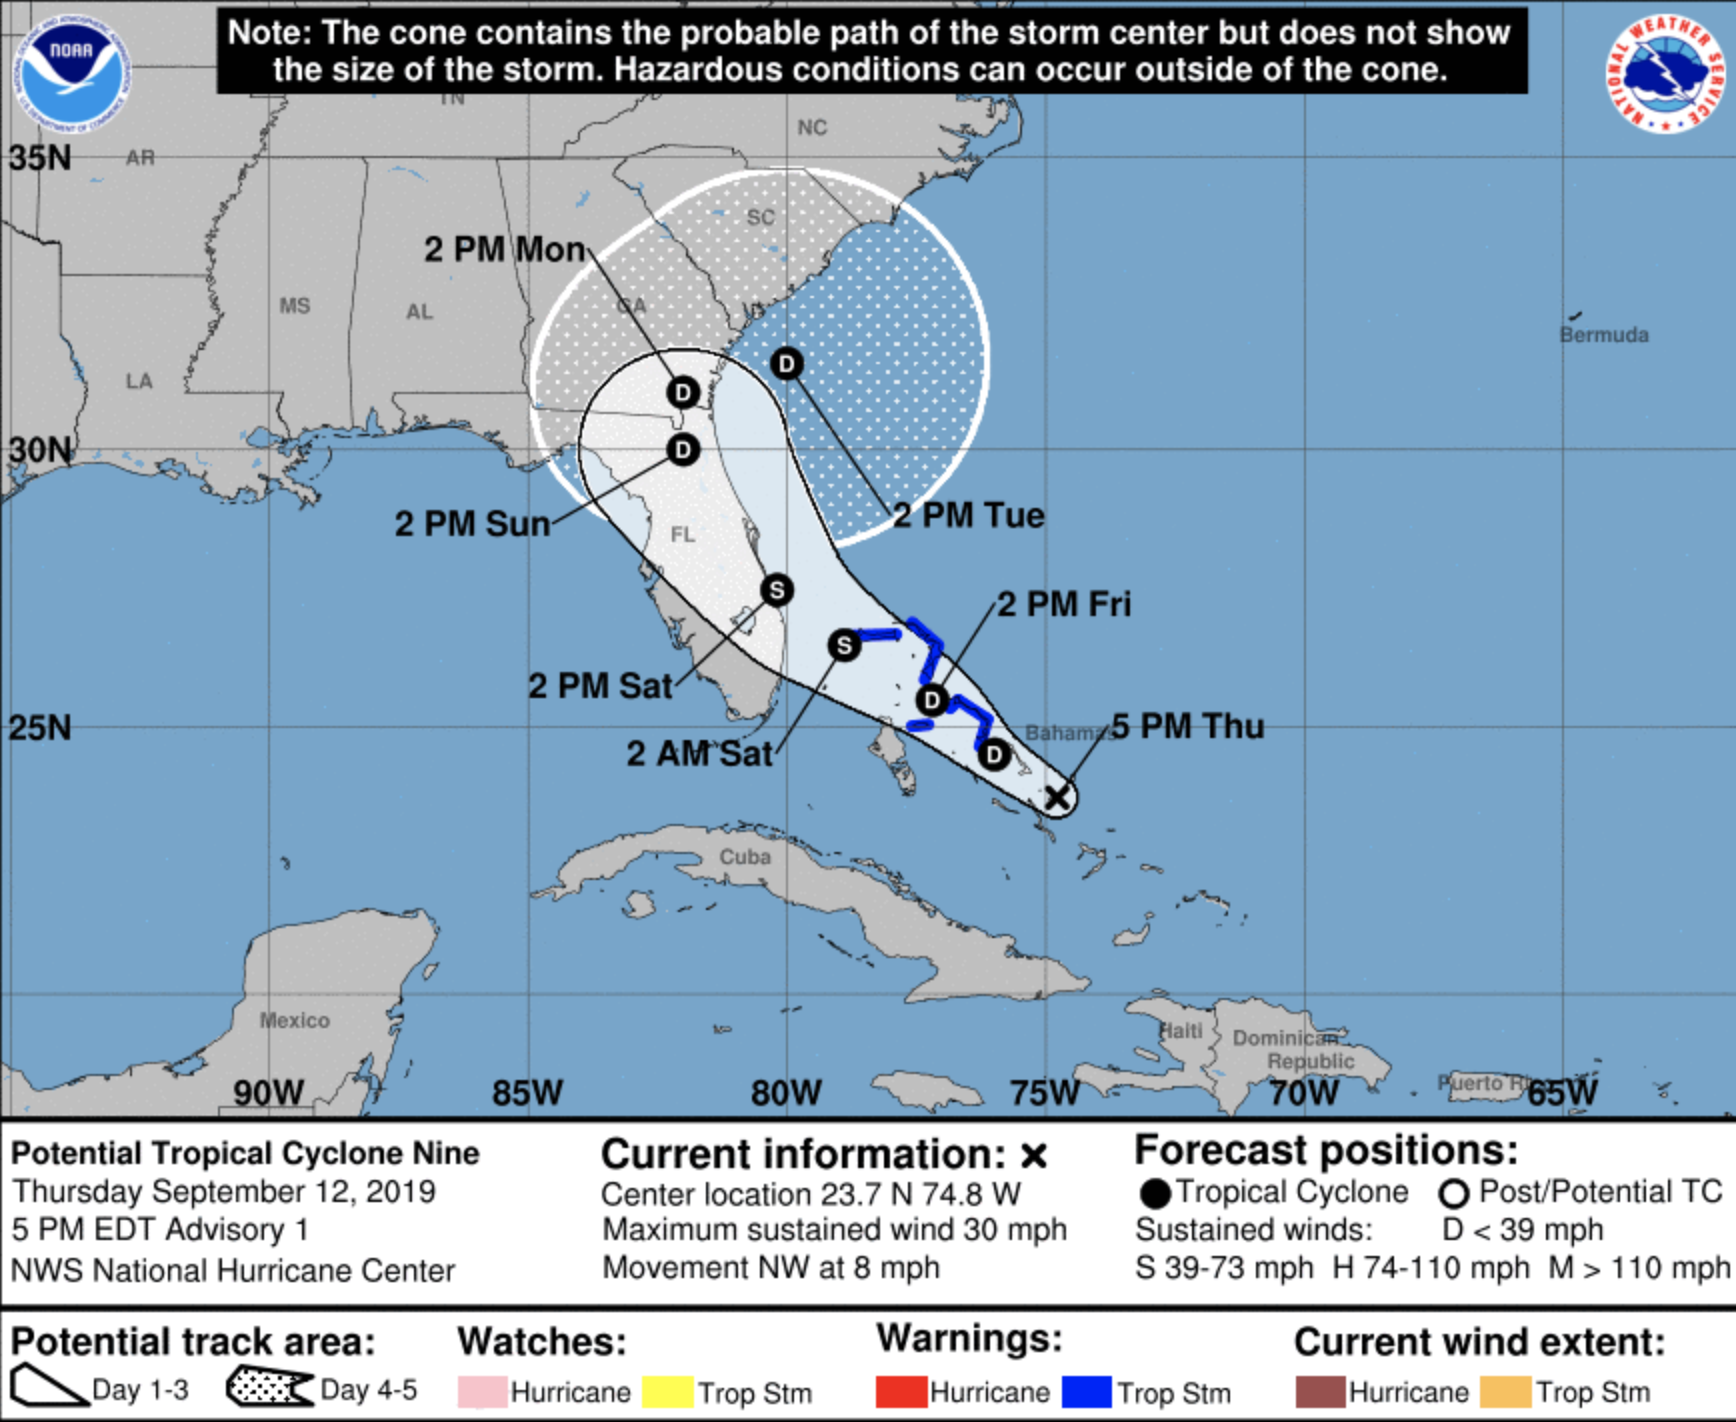 Tropical Disturbance Will Likely Strengthen Into Tropical Storm Humberto The Bahamas And Florida Are In Its Path